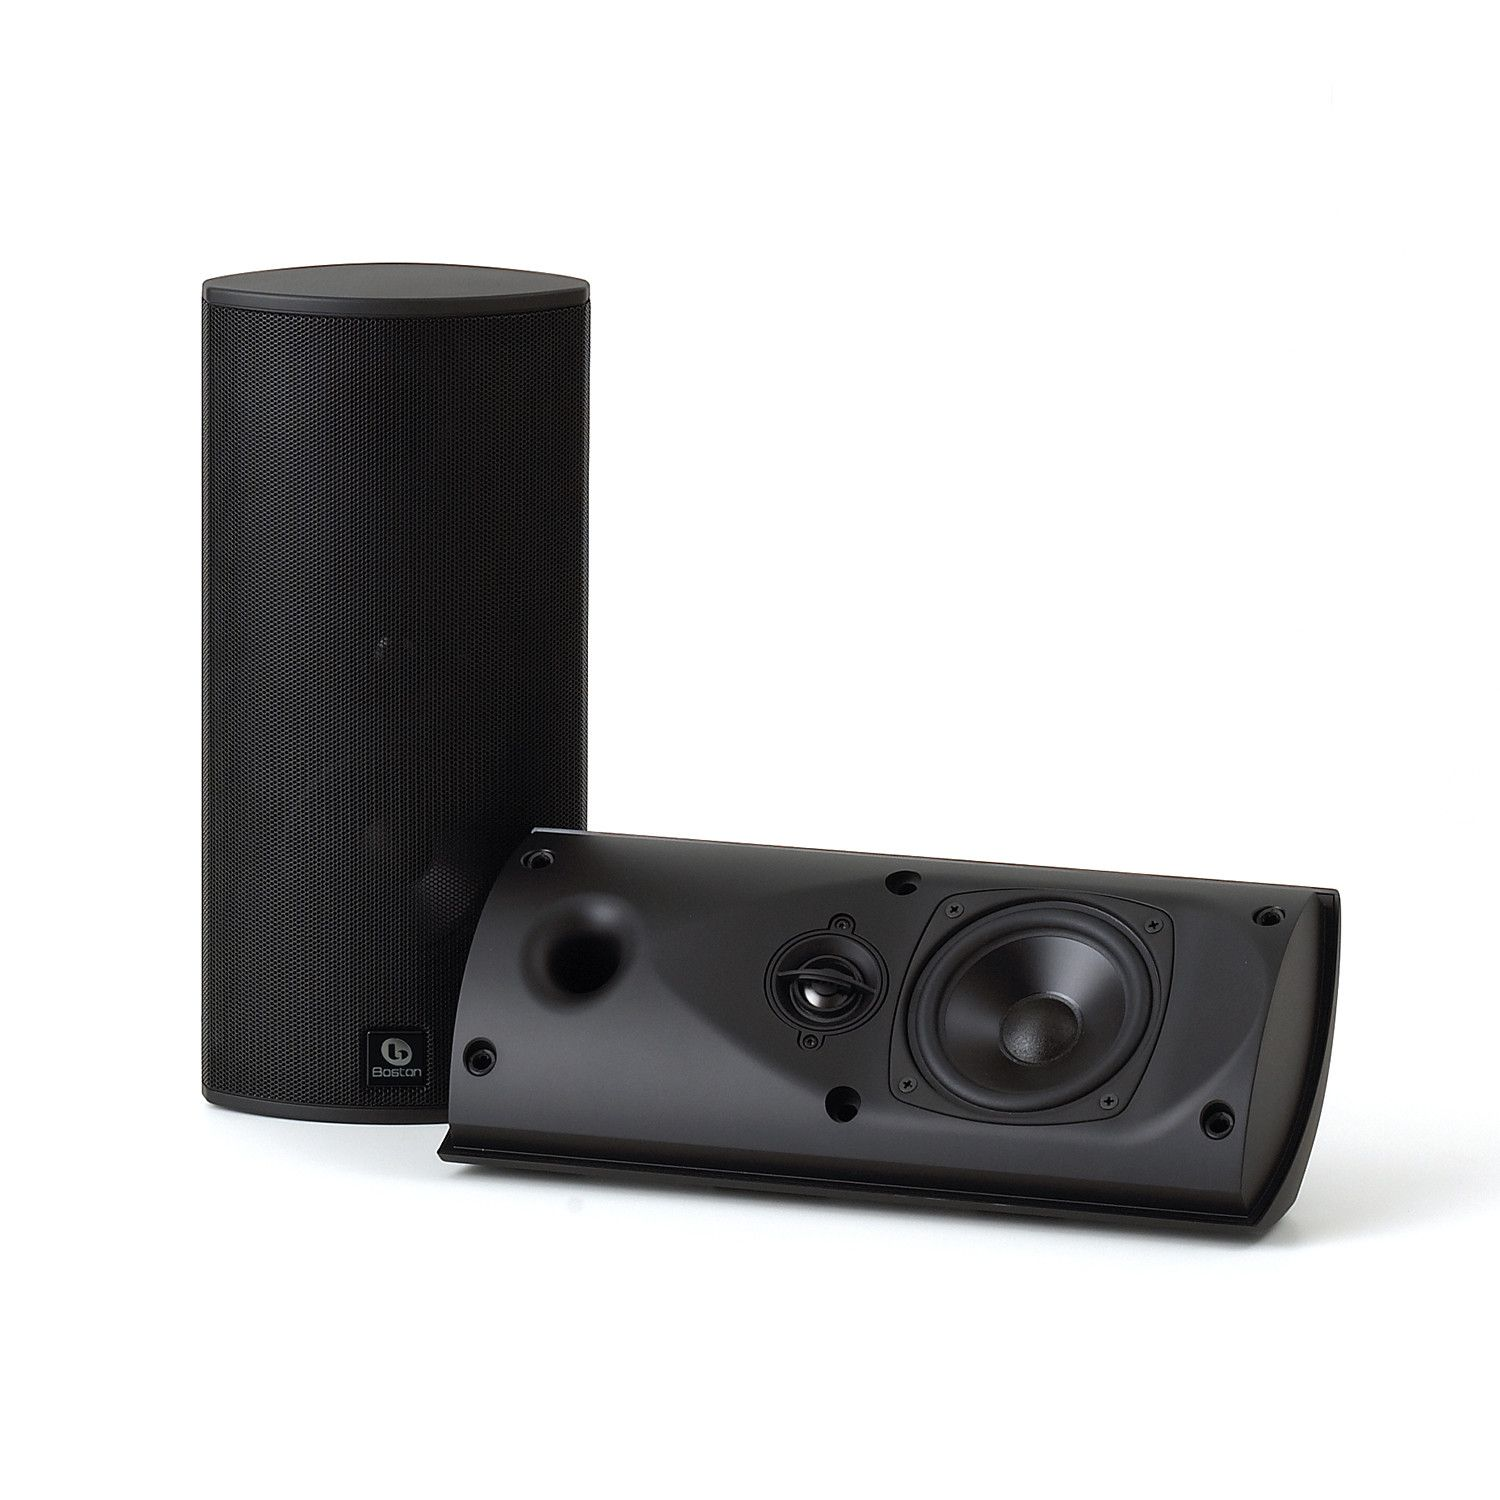 Bravo 20 On Wall Speaker The Boston Bravo 20 Is A Multipurpose High Performance Loudspeaker Whose Unique D In Wall Speakers Cool Things To Buy Wall Mounted Tv